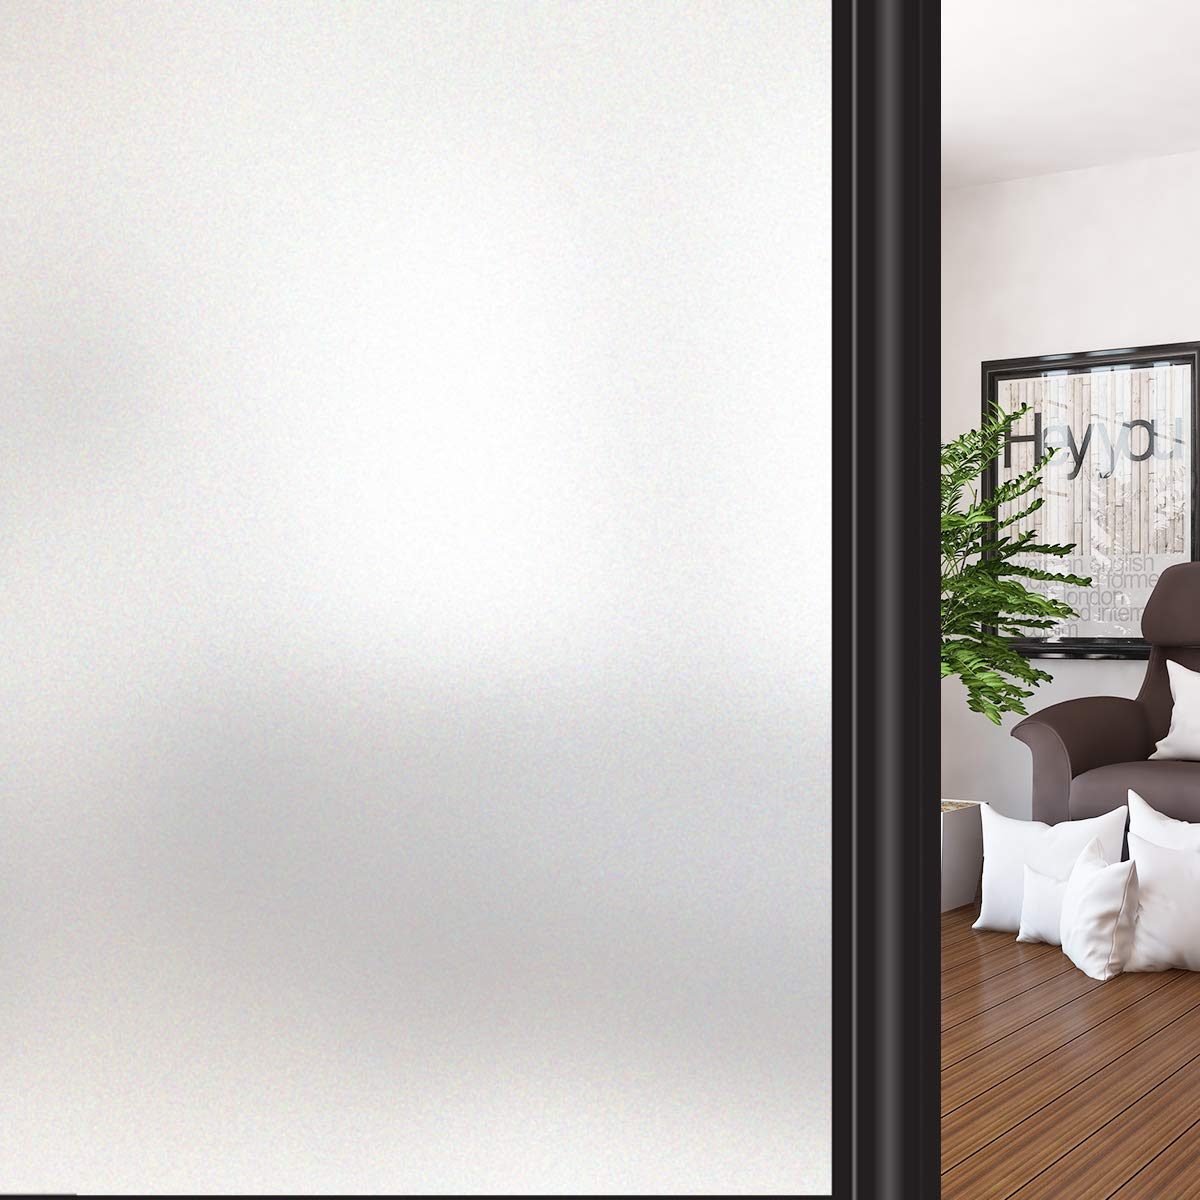 10. HIDBEA Privacy Window Film